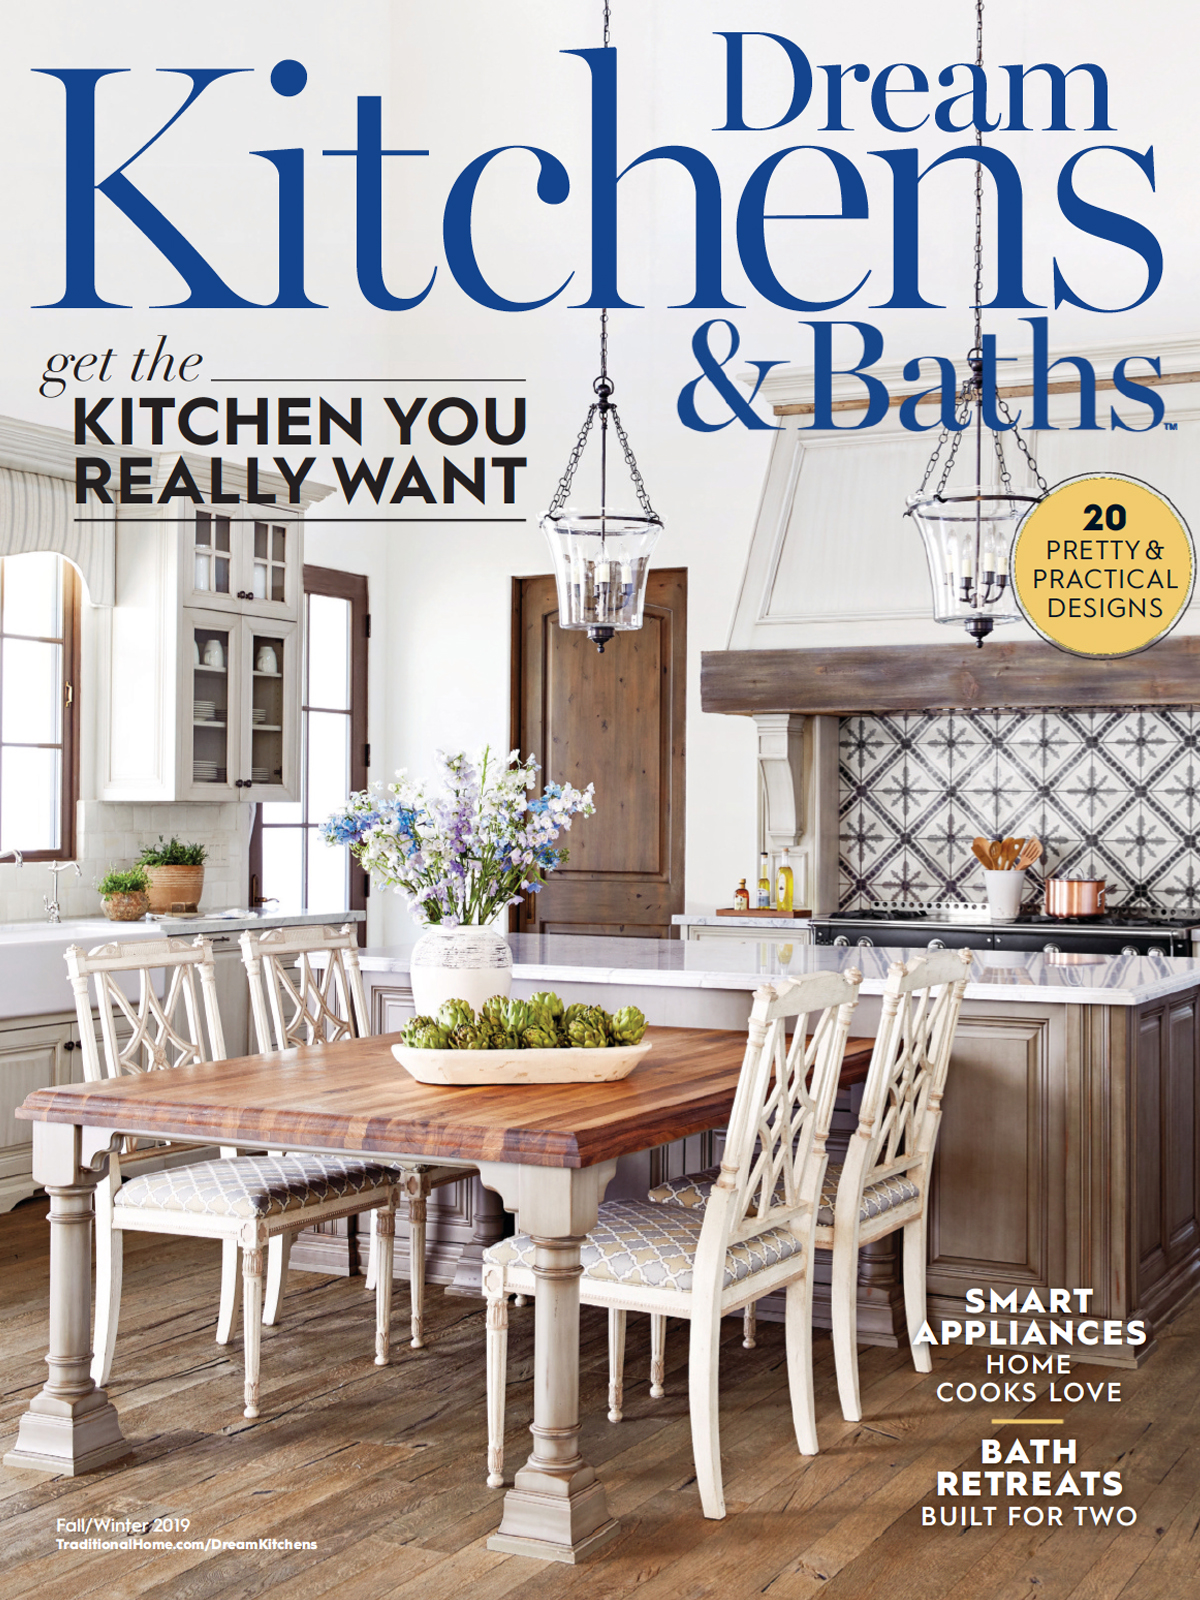 blackband_design_dream_kitchens_baths_fall_2019-cover